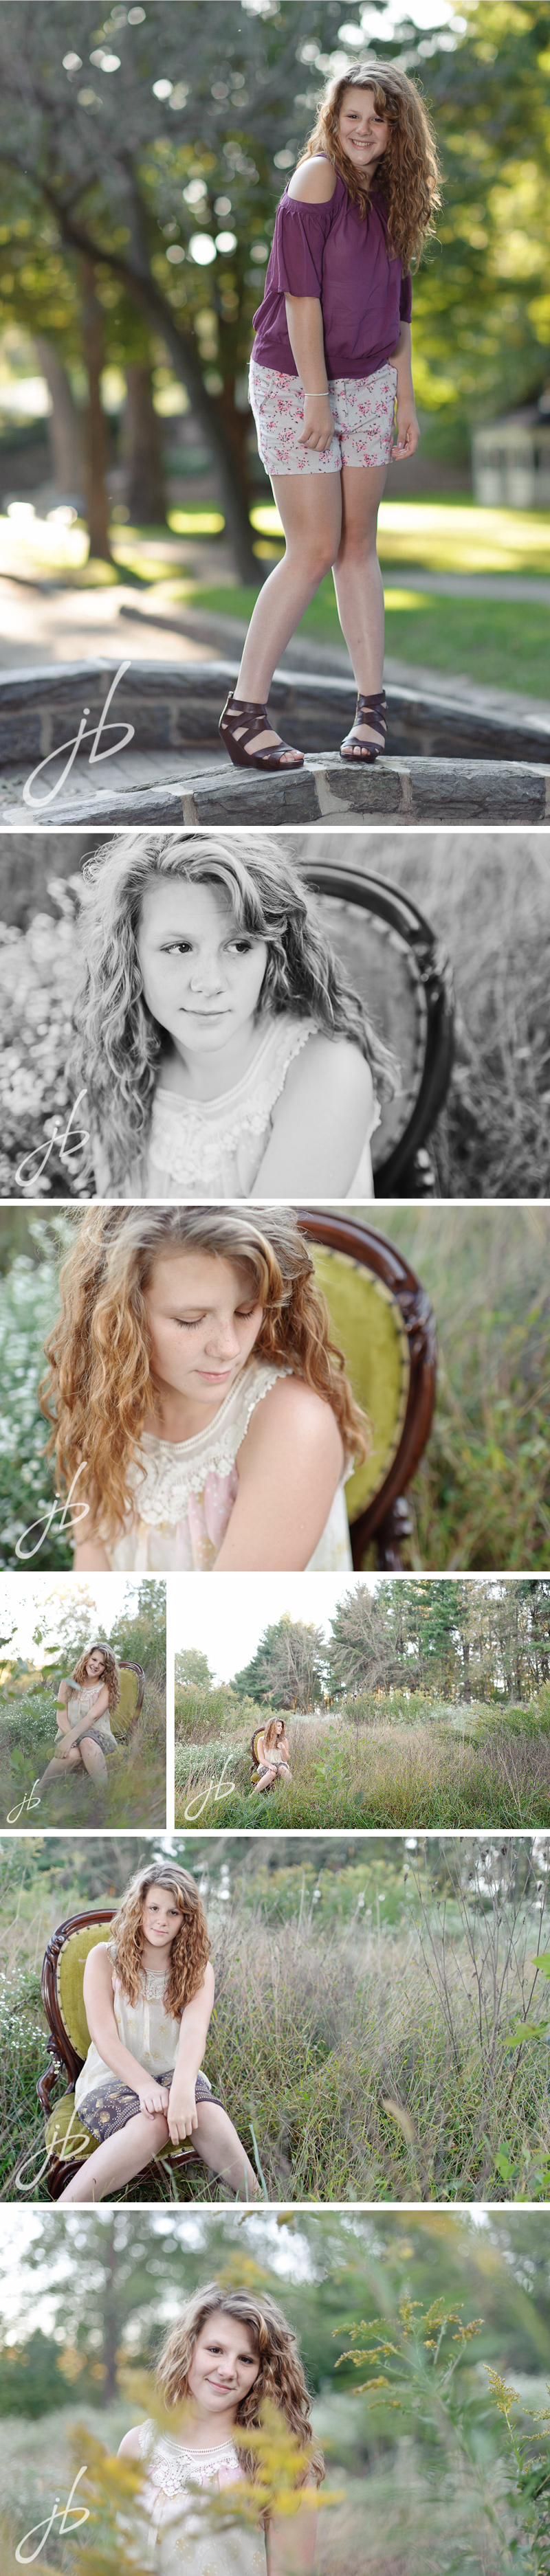 Lancaster PA Senior portrait photography by Jeremy Bischoff Photography